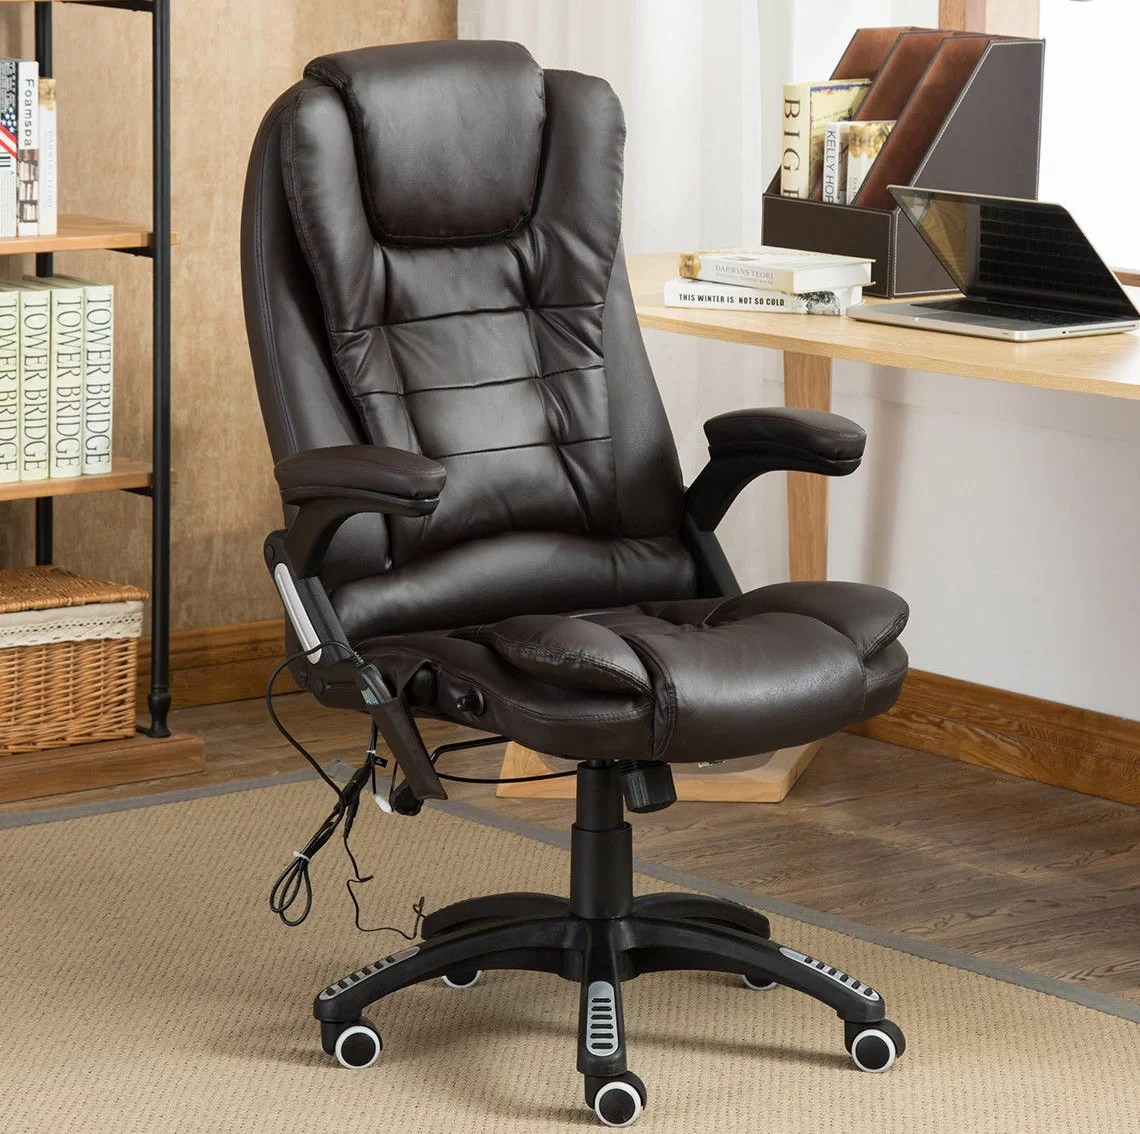 Massage Office Chair Callensburg Massage Executive Chair